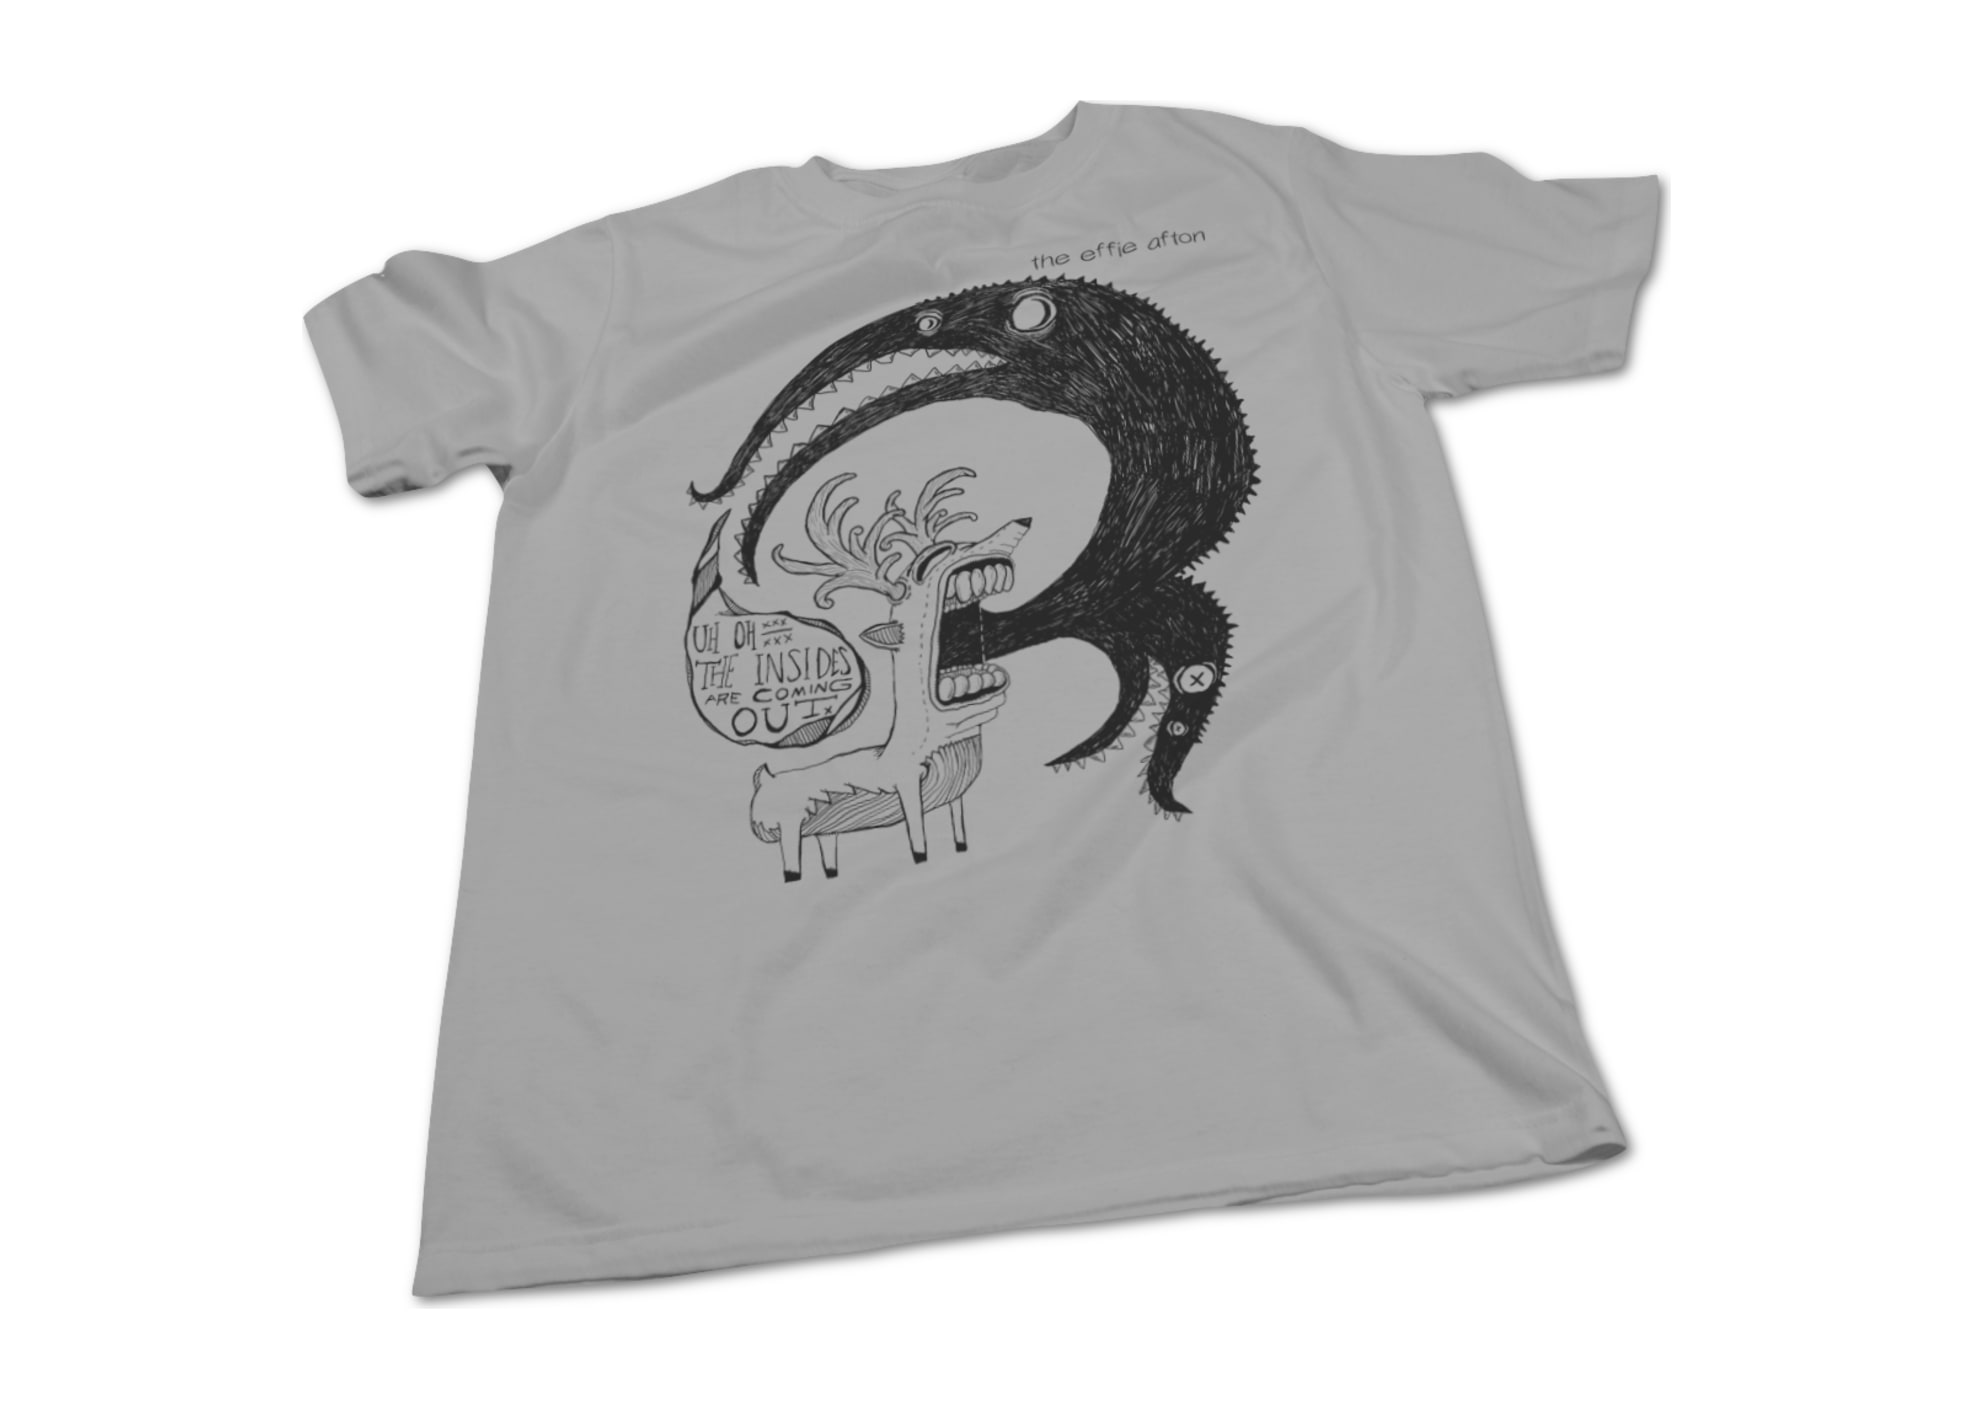 The effie afton uh oh tee 1468371648